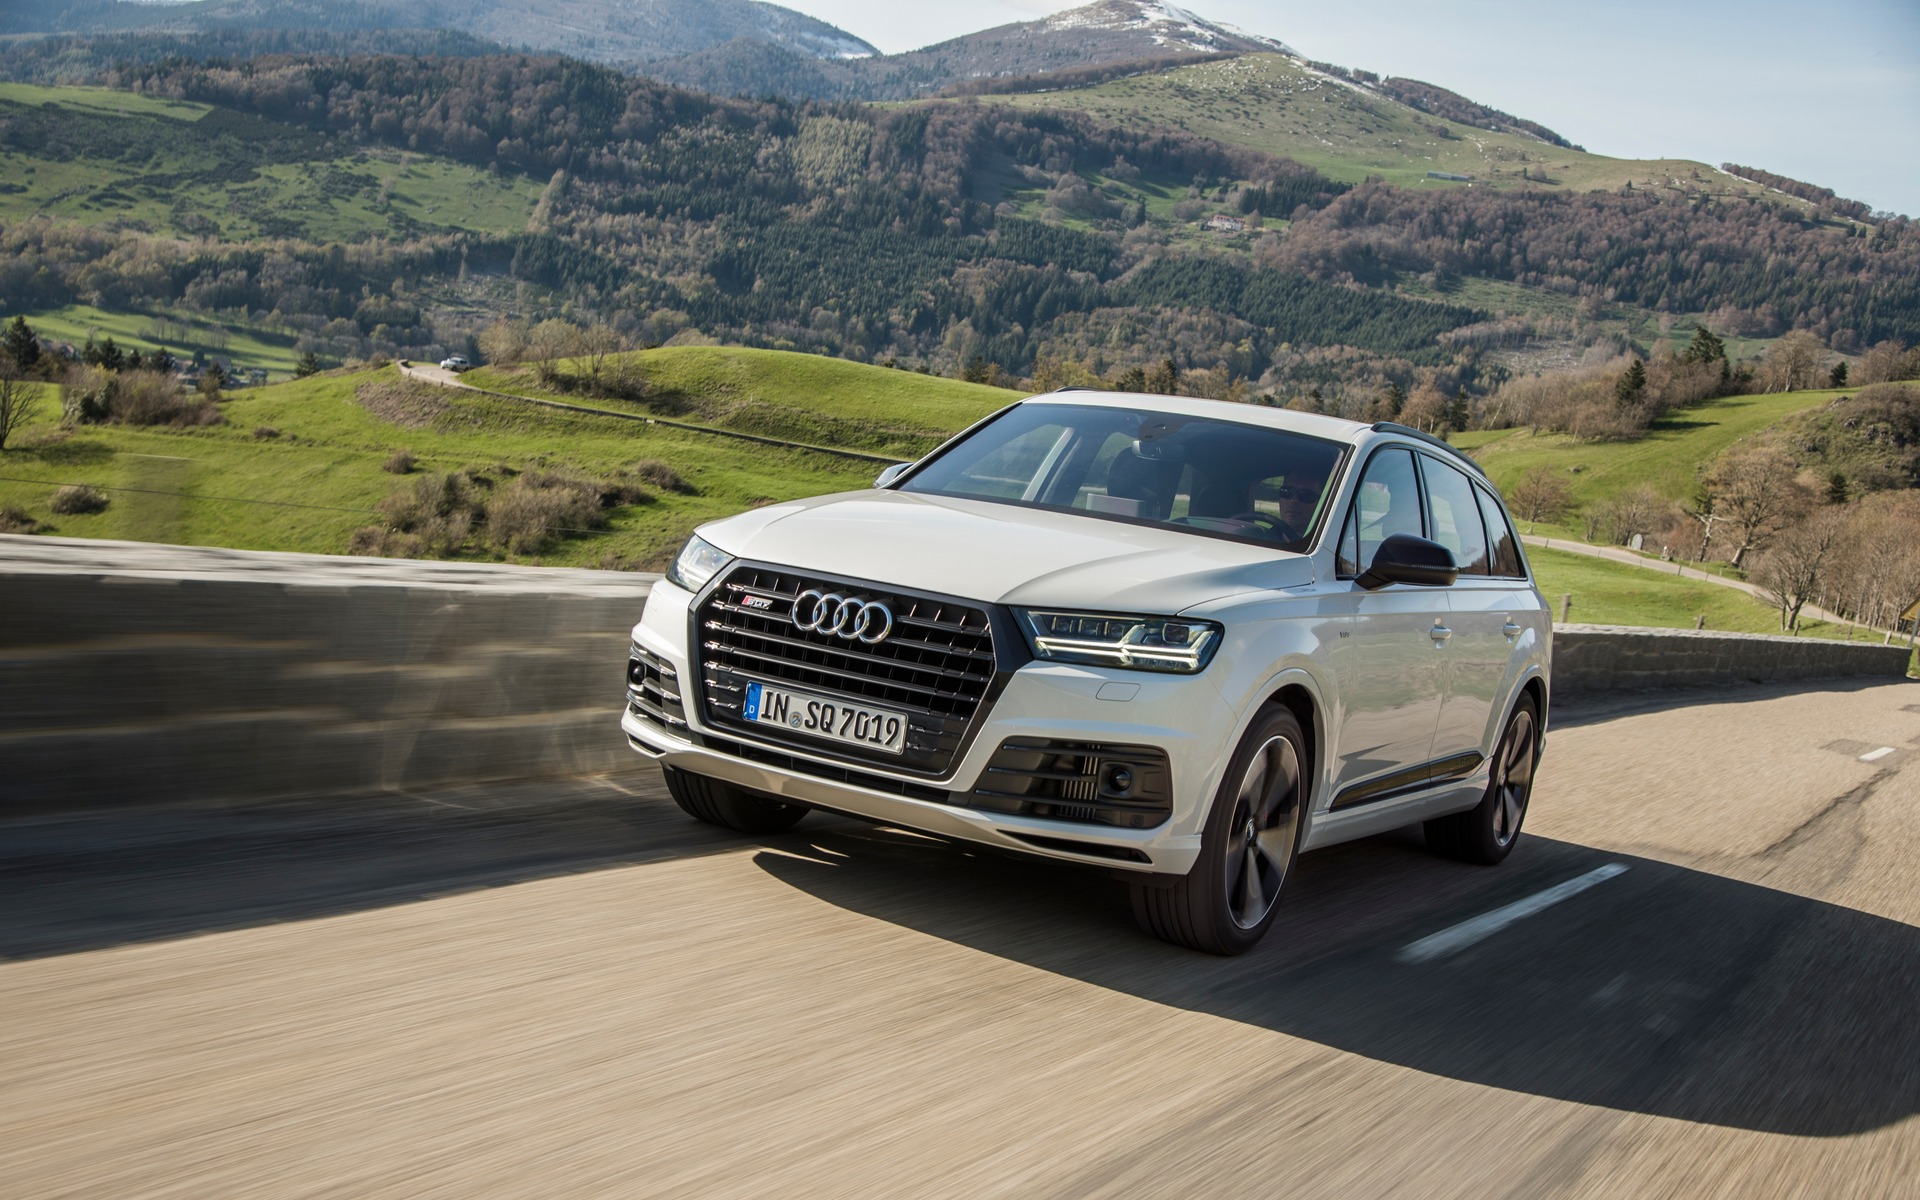 2018 Audi Sq7 Tdi The Most Powerful Of All Diesel Suvs 4 20